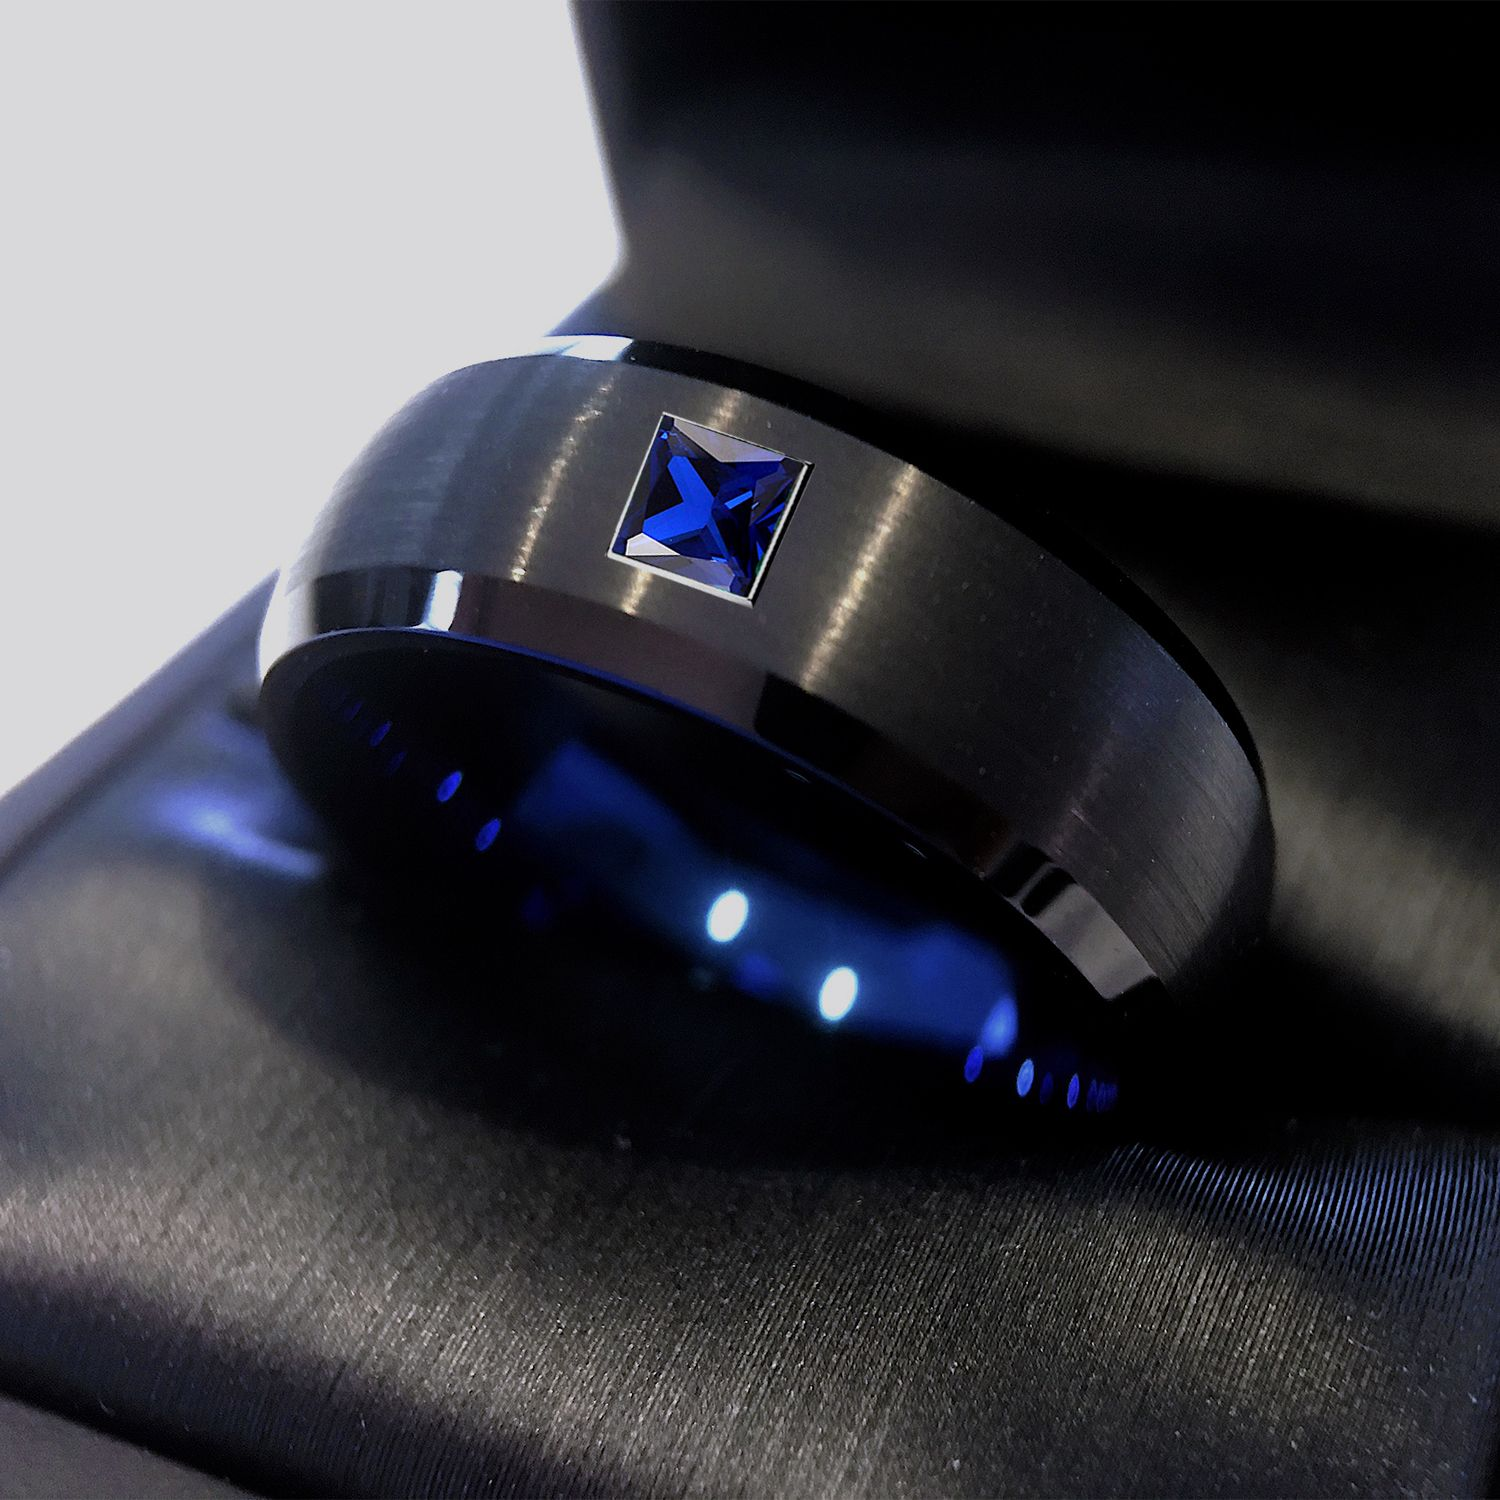 Black and Blue Tungsten Ring with Square Sapphire Stone